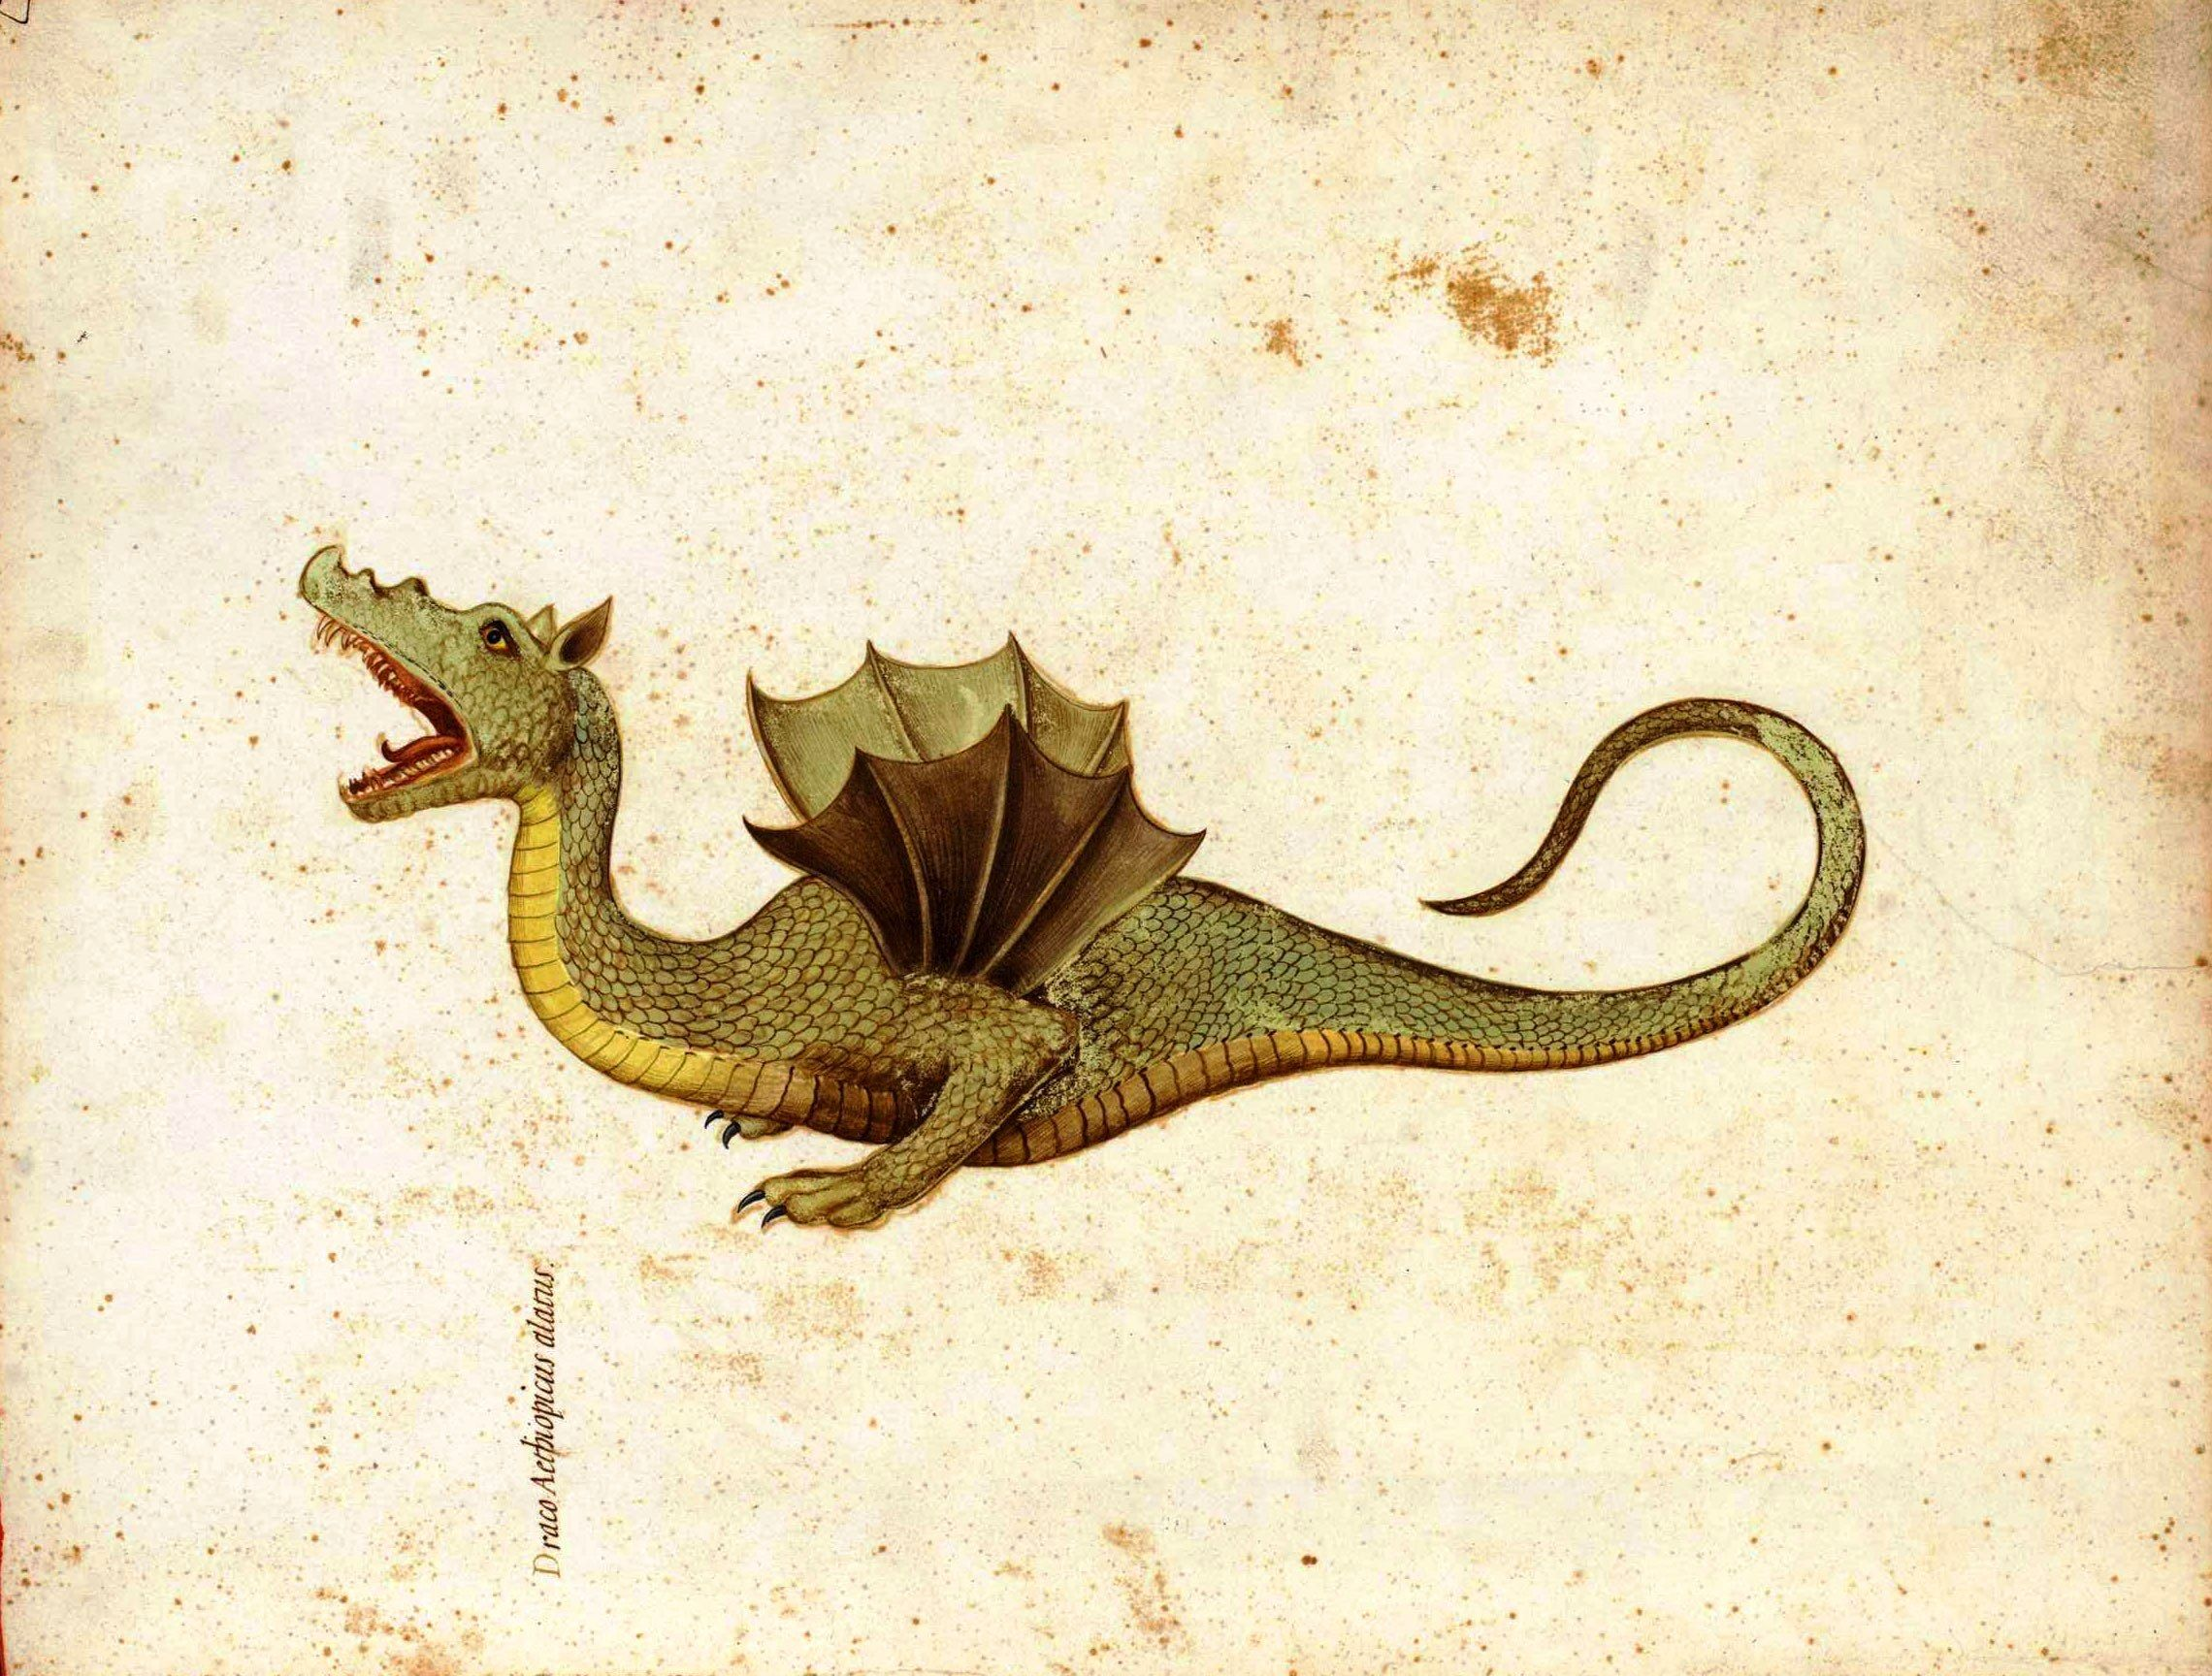 How to breed heraldic dragon - Mediaeval Picture Of A Dragon Draco Aethiopticus Or Ethiopian Dragon